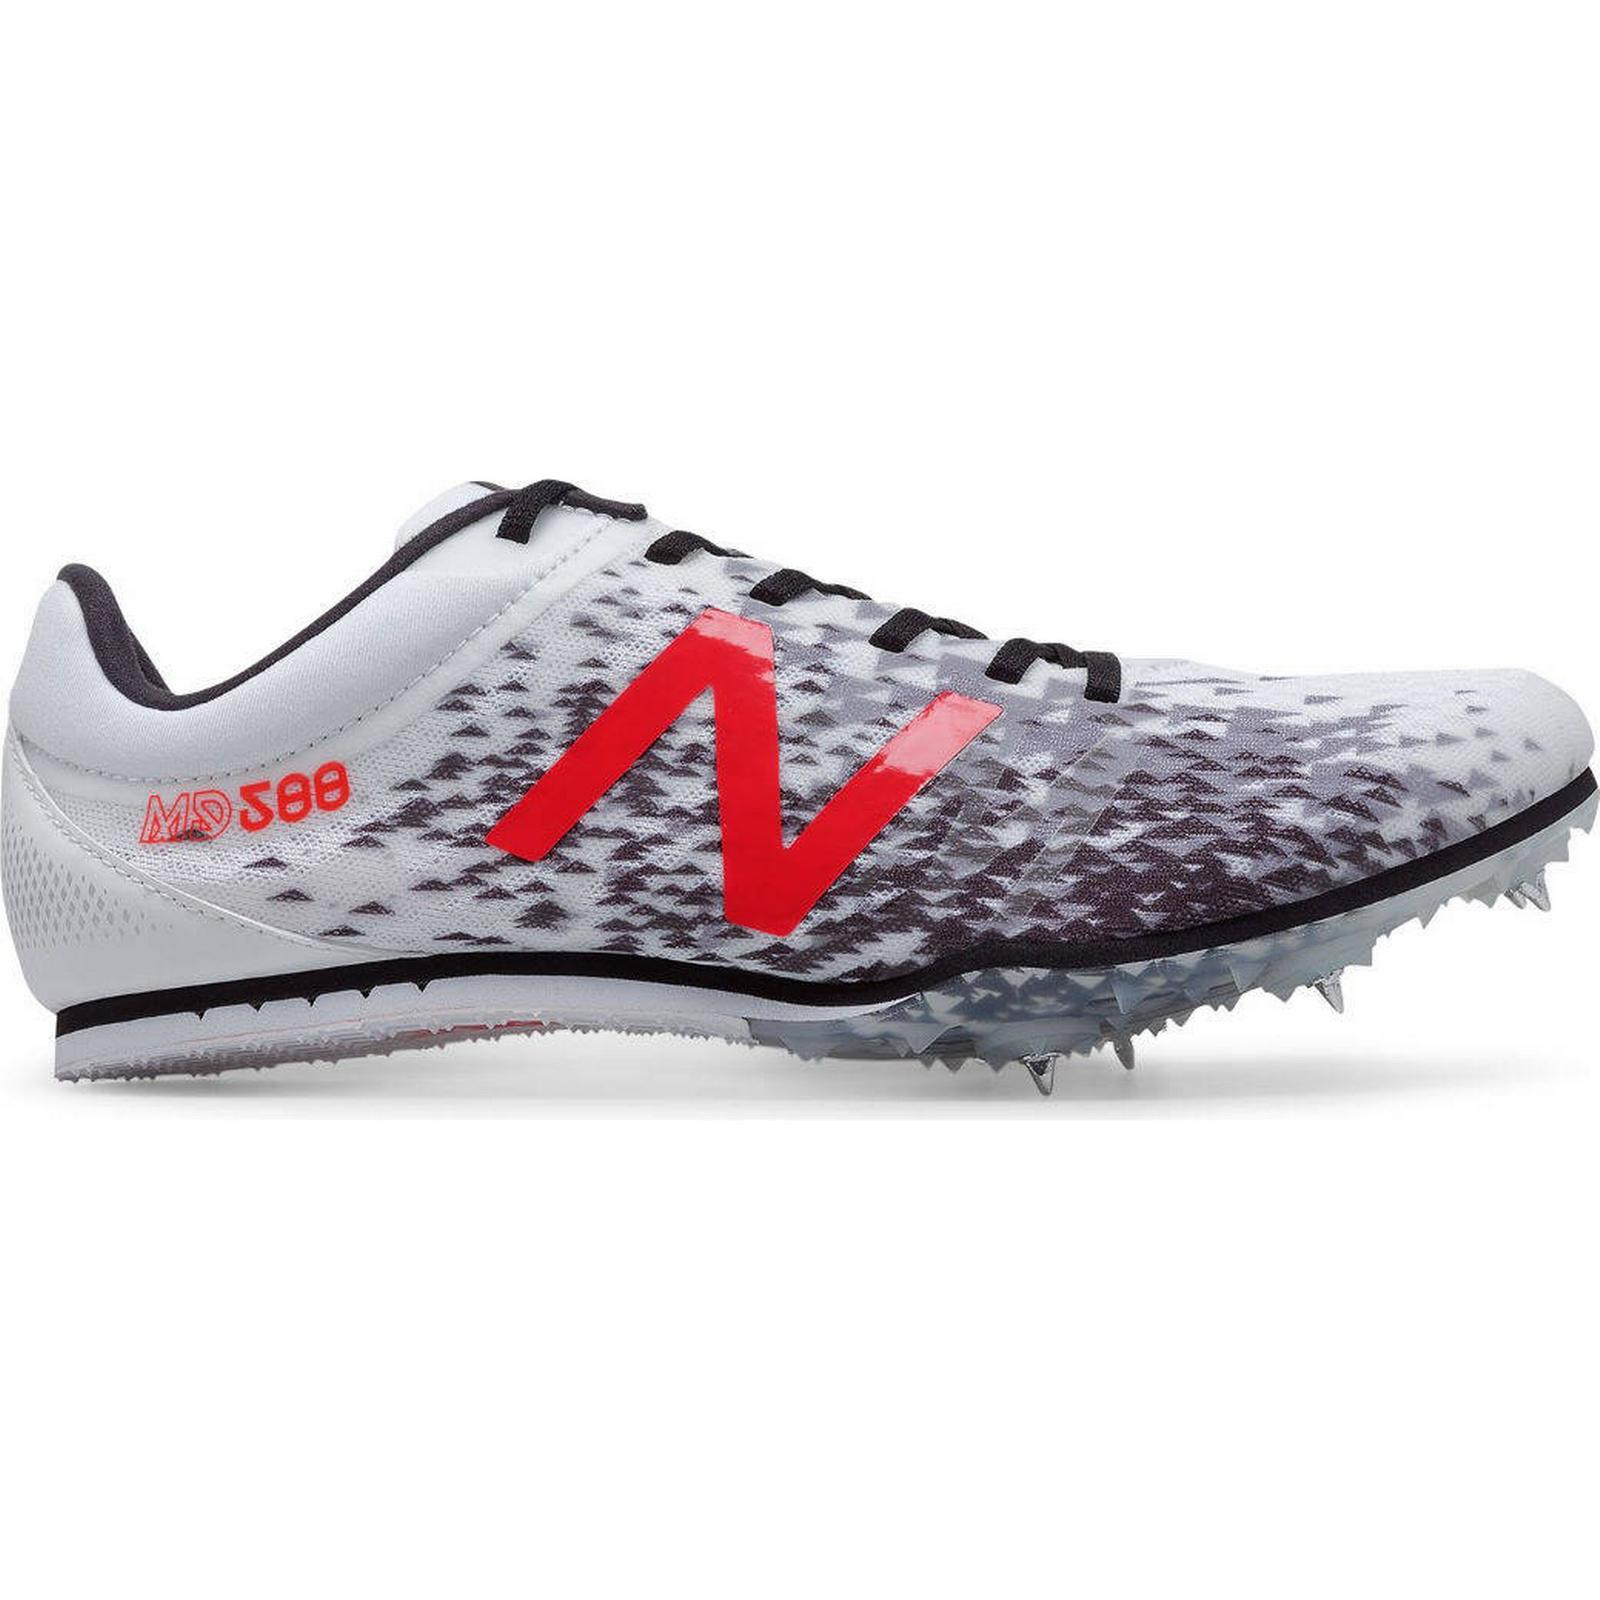 Wiggle Online Track Cycle Shop New Balance MD500 v5 Shoes Track Online and Field Shoes 3b9fc3